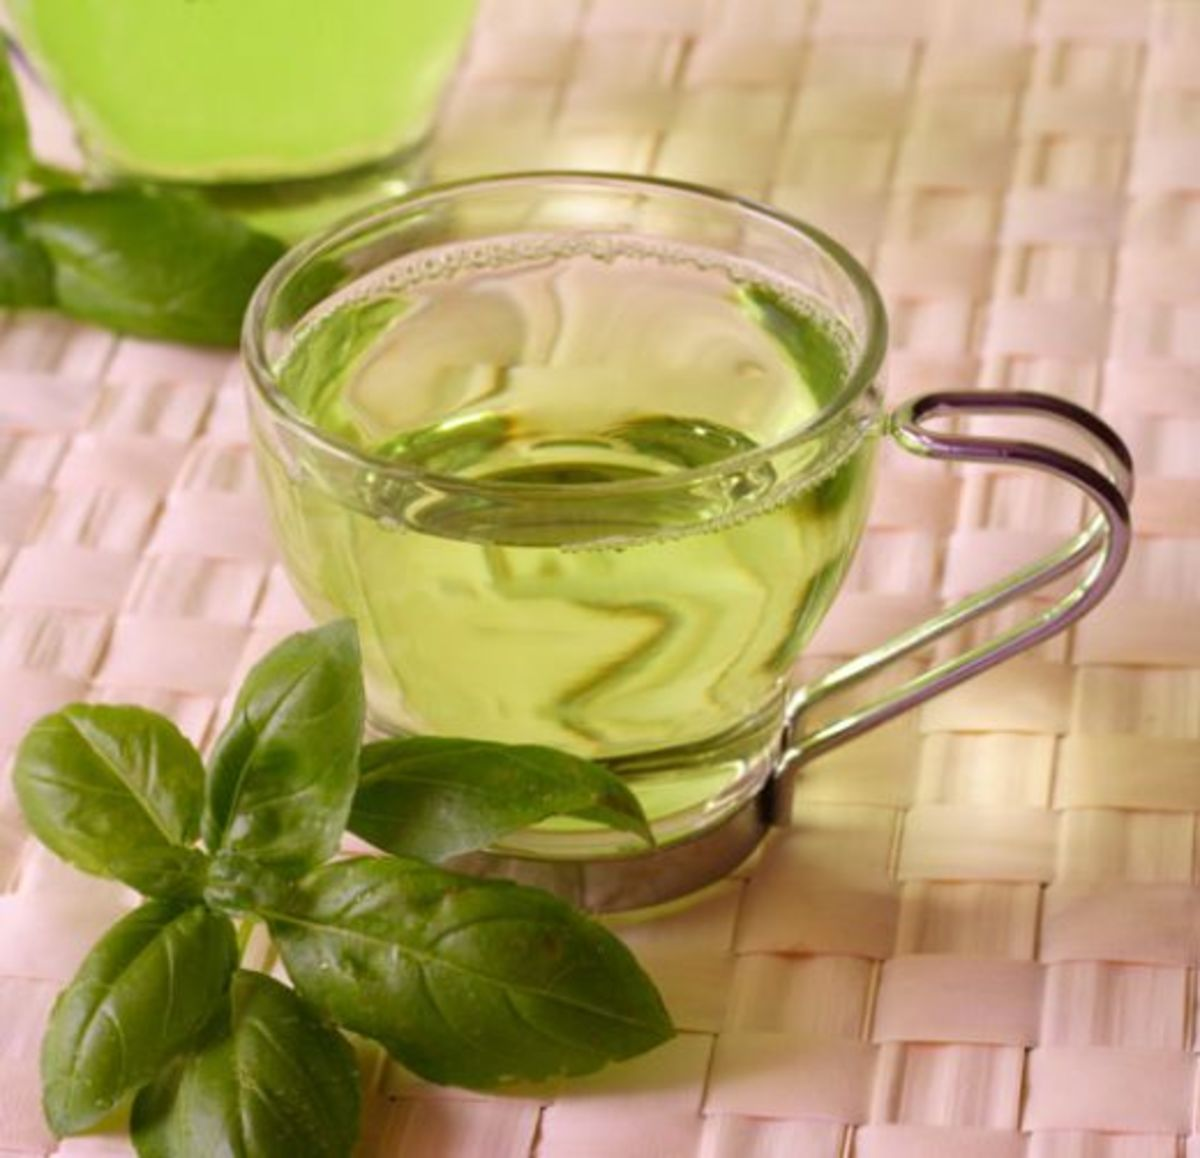 Avoid green tea with coumadin